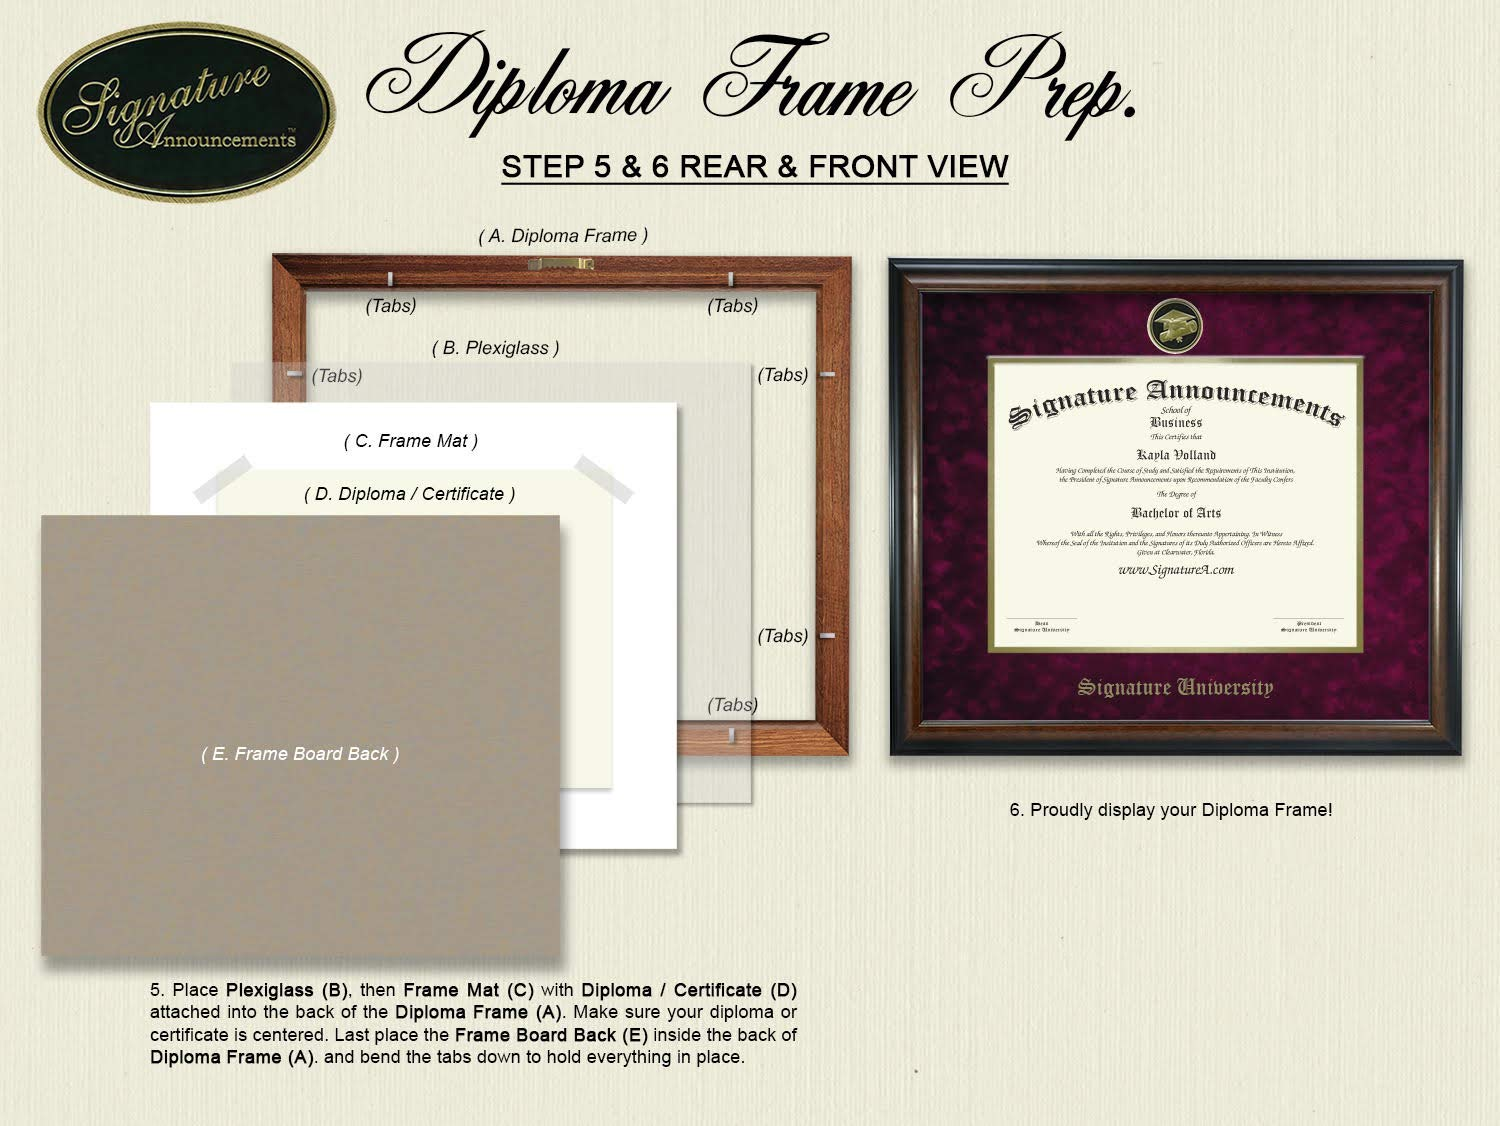 Signature Announcements Saint-Louis-University Undergraduate Name /& Tassel Graduation Diploma Frame 20 x 20 Gold Accent Gloss Mahogany Sculpted Foil Seal